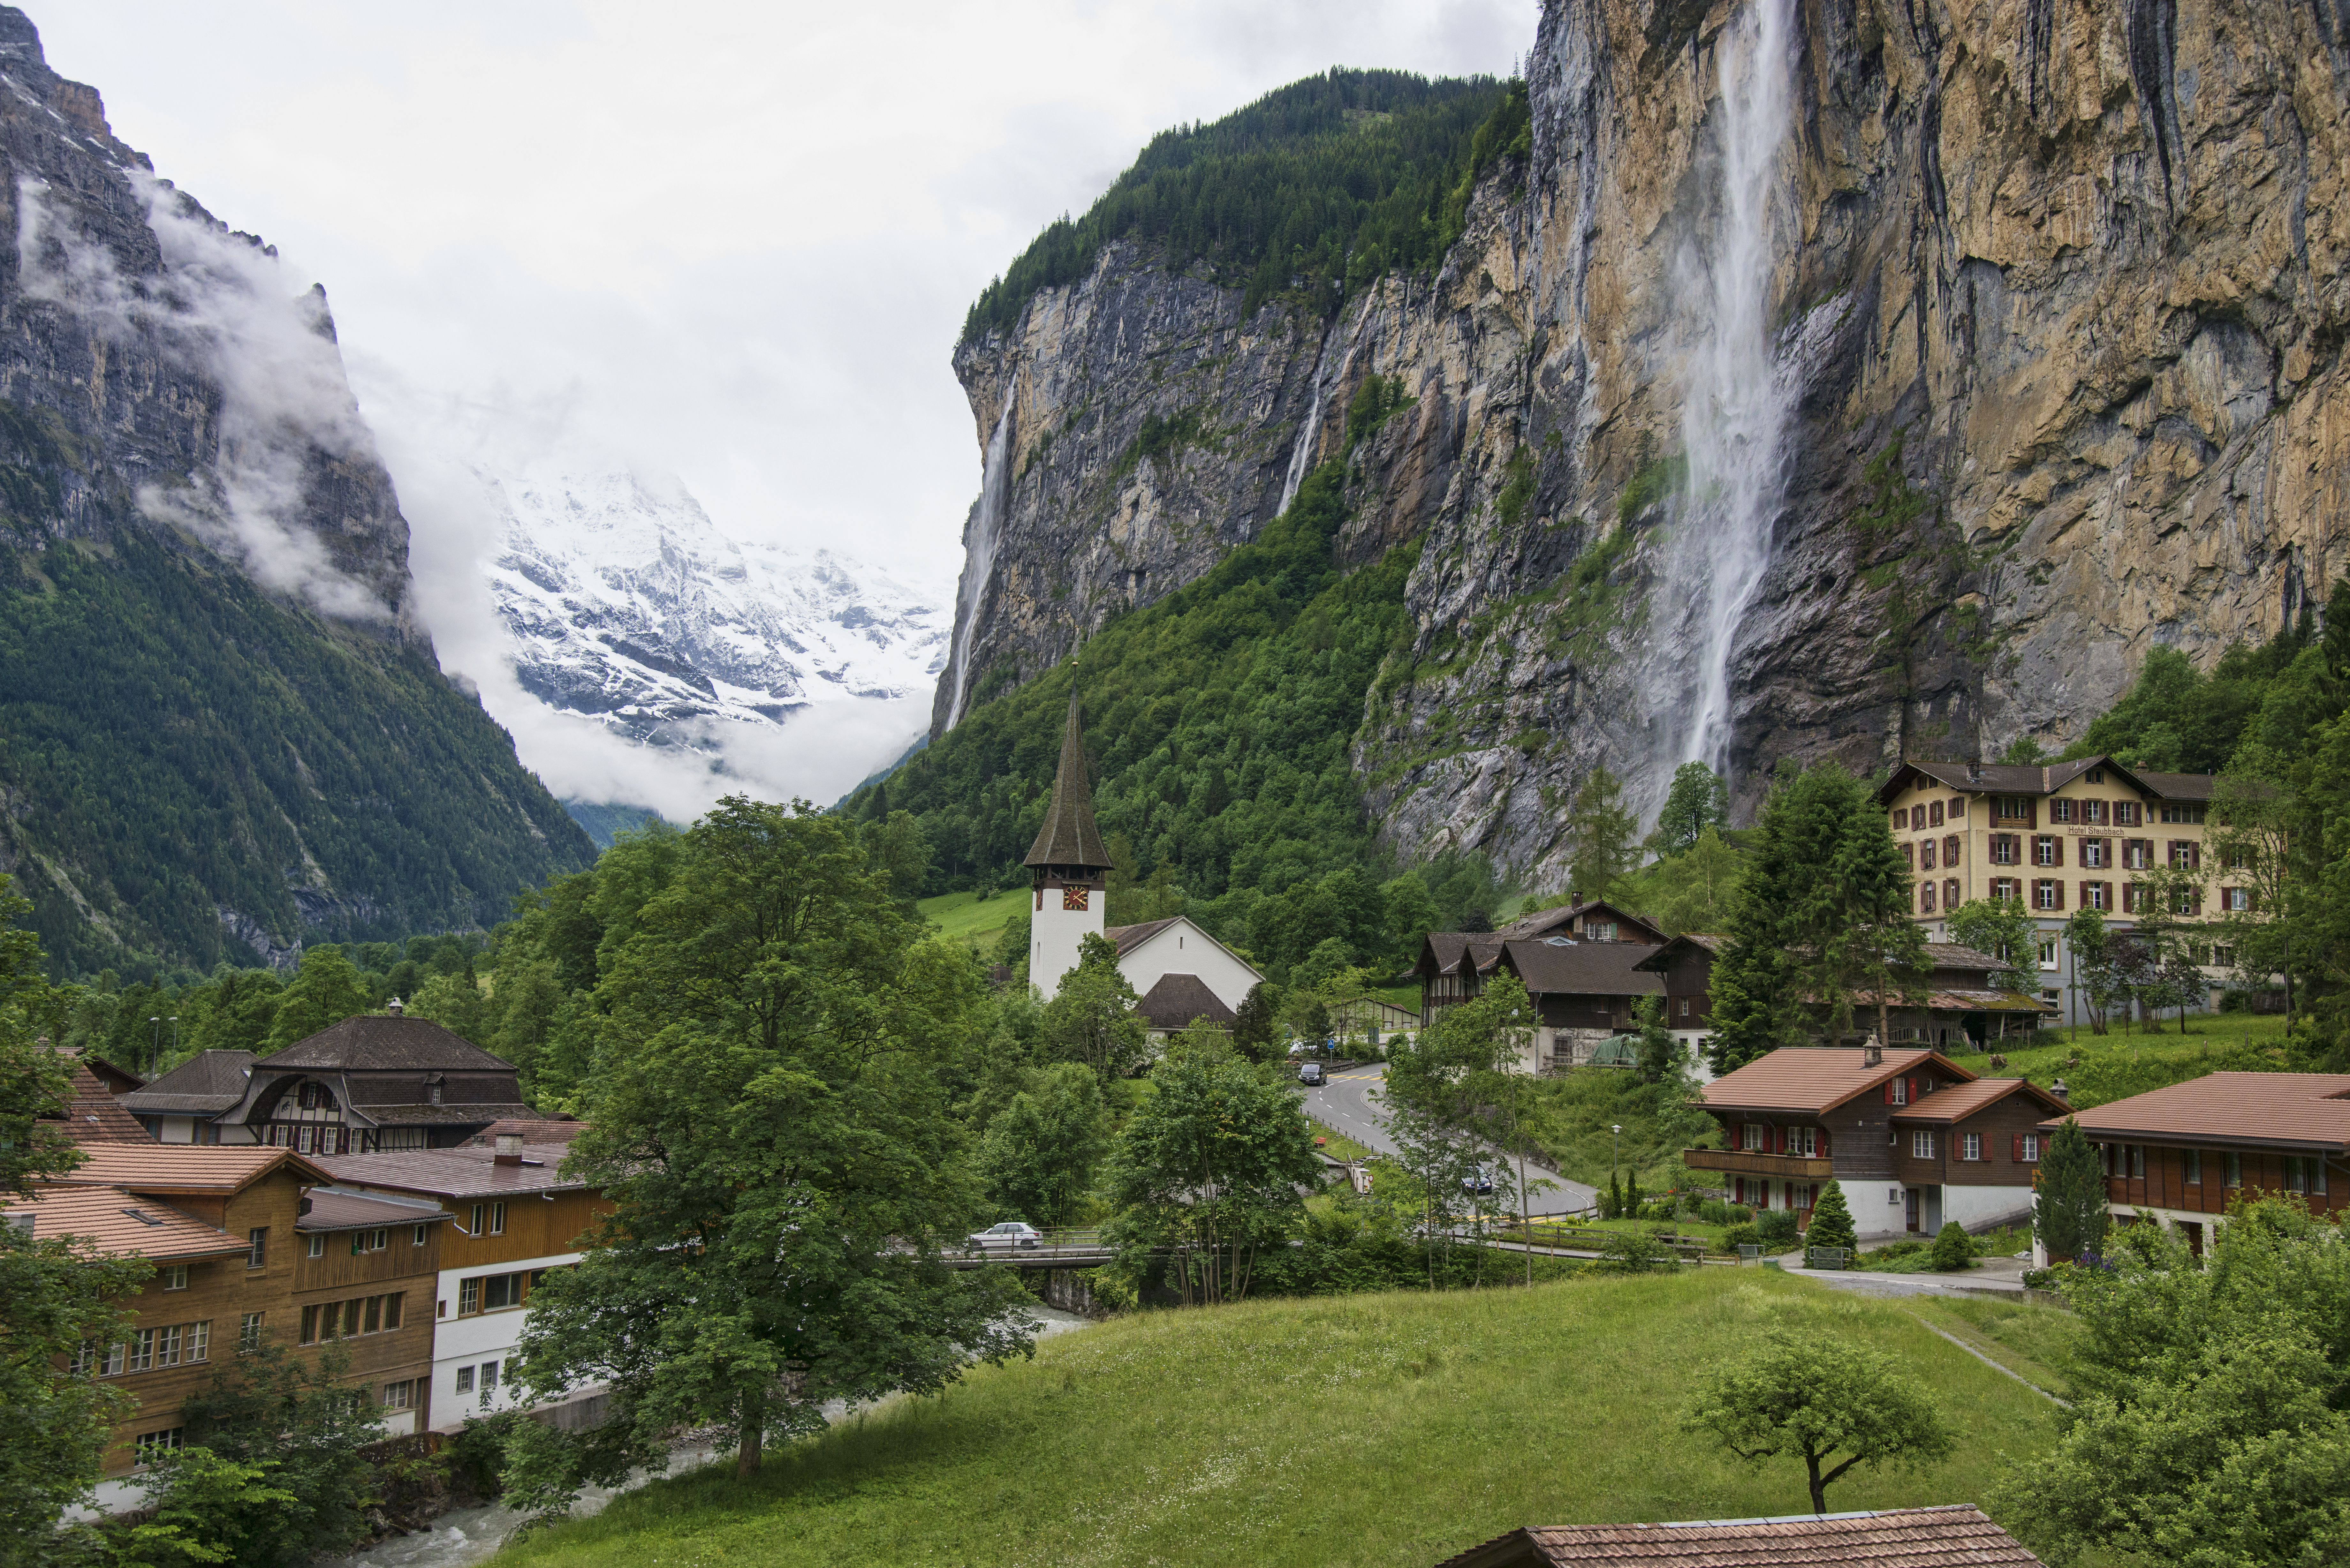 Lauterbrunnen is a tiny town cluttered not with tourists but with Swiss chalet architecture